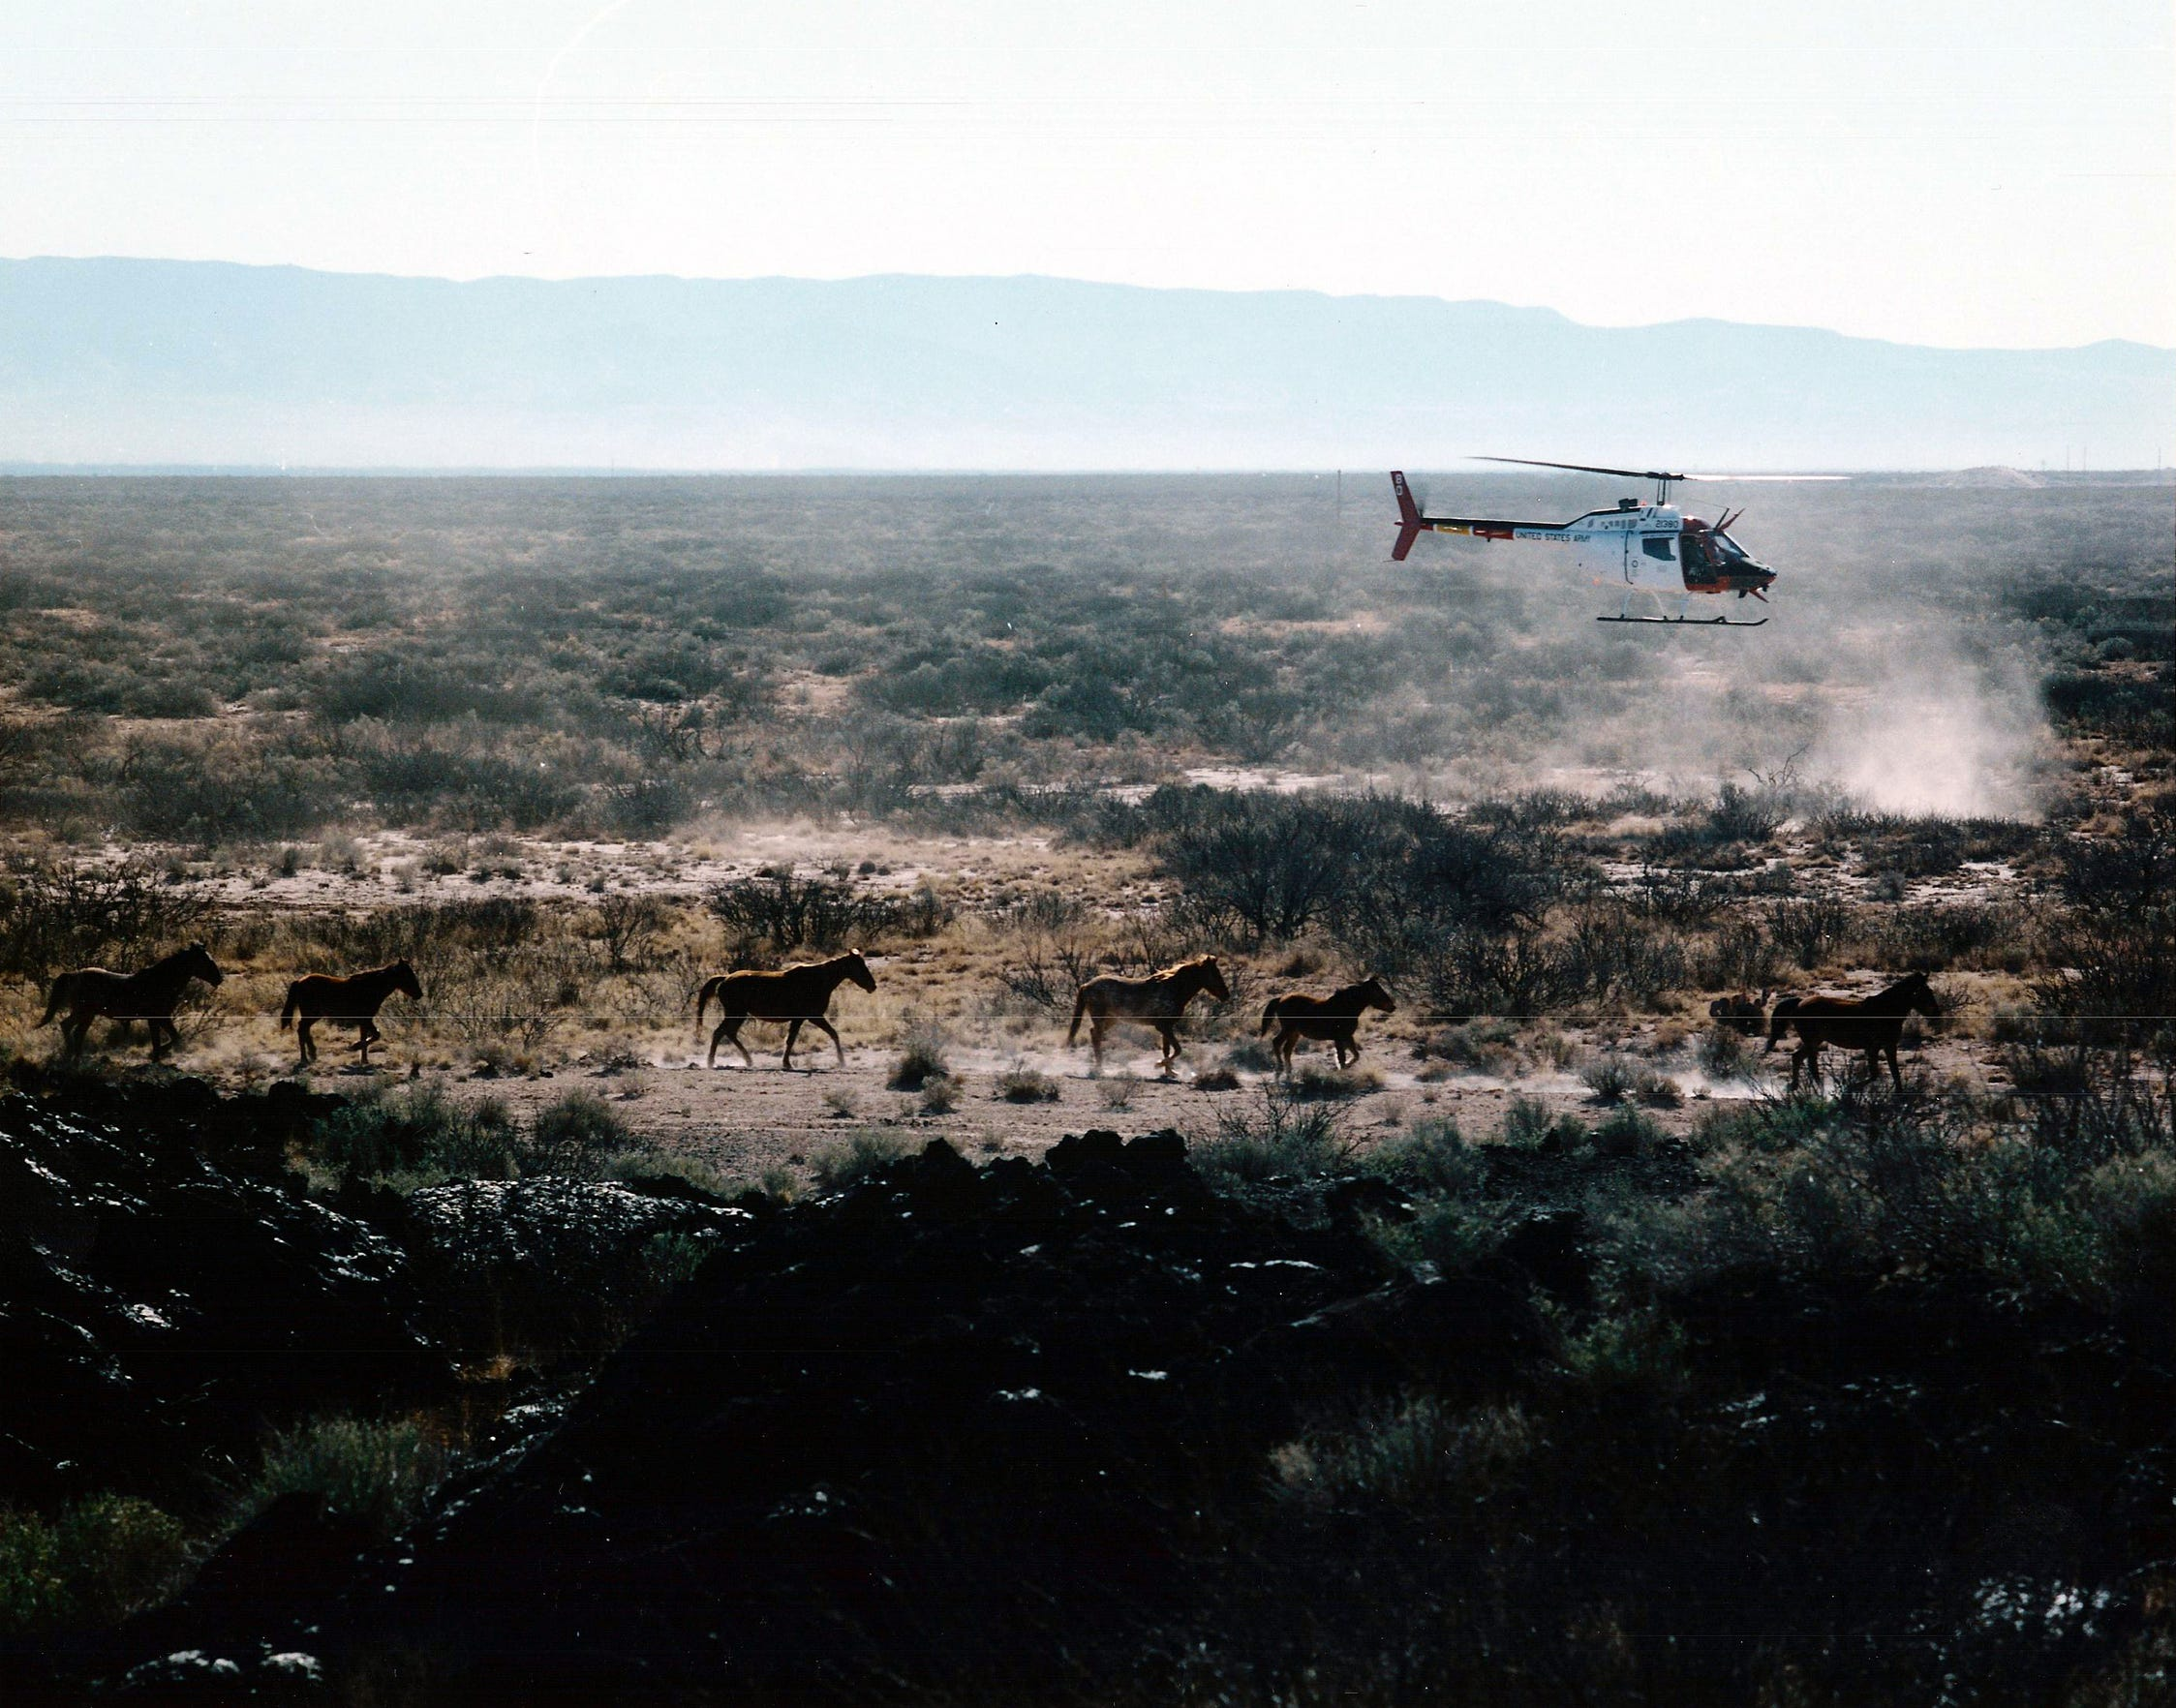 Small helicopters were used to help herd the free-roaming White Sands horses toward capture pens.